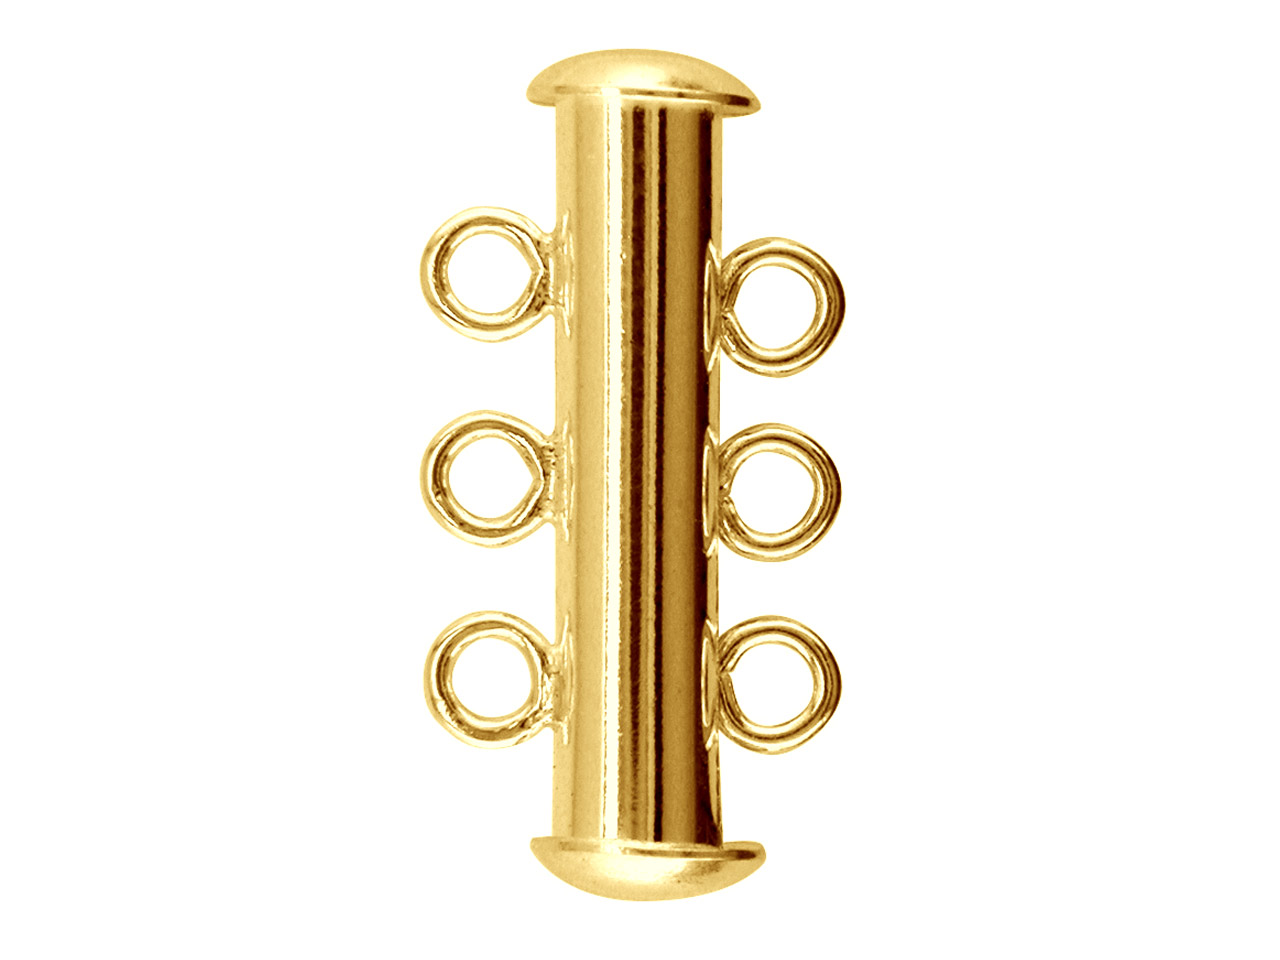 Gold Plated Slider Clasp Pack of 10 6 Loop